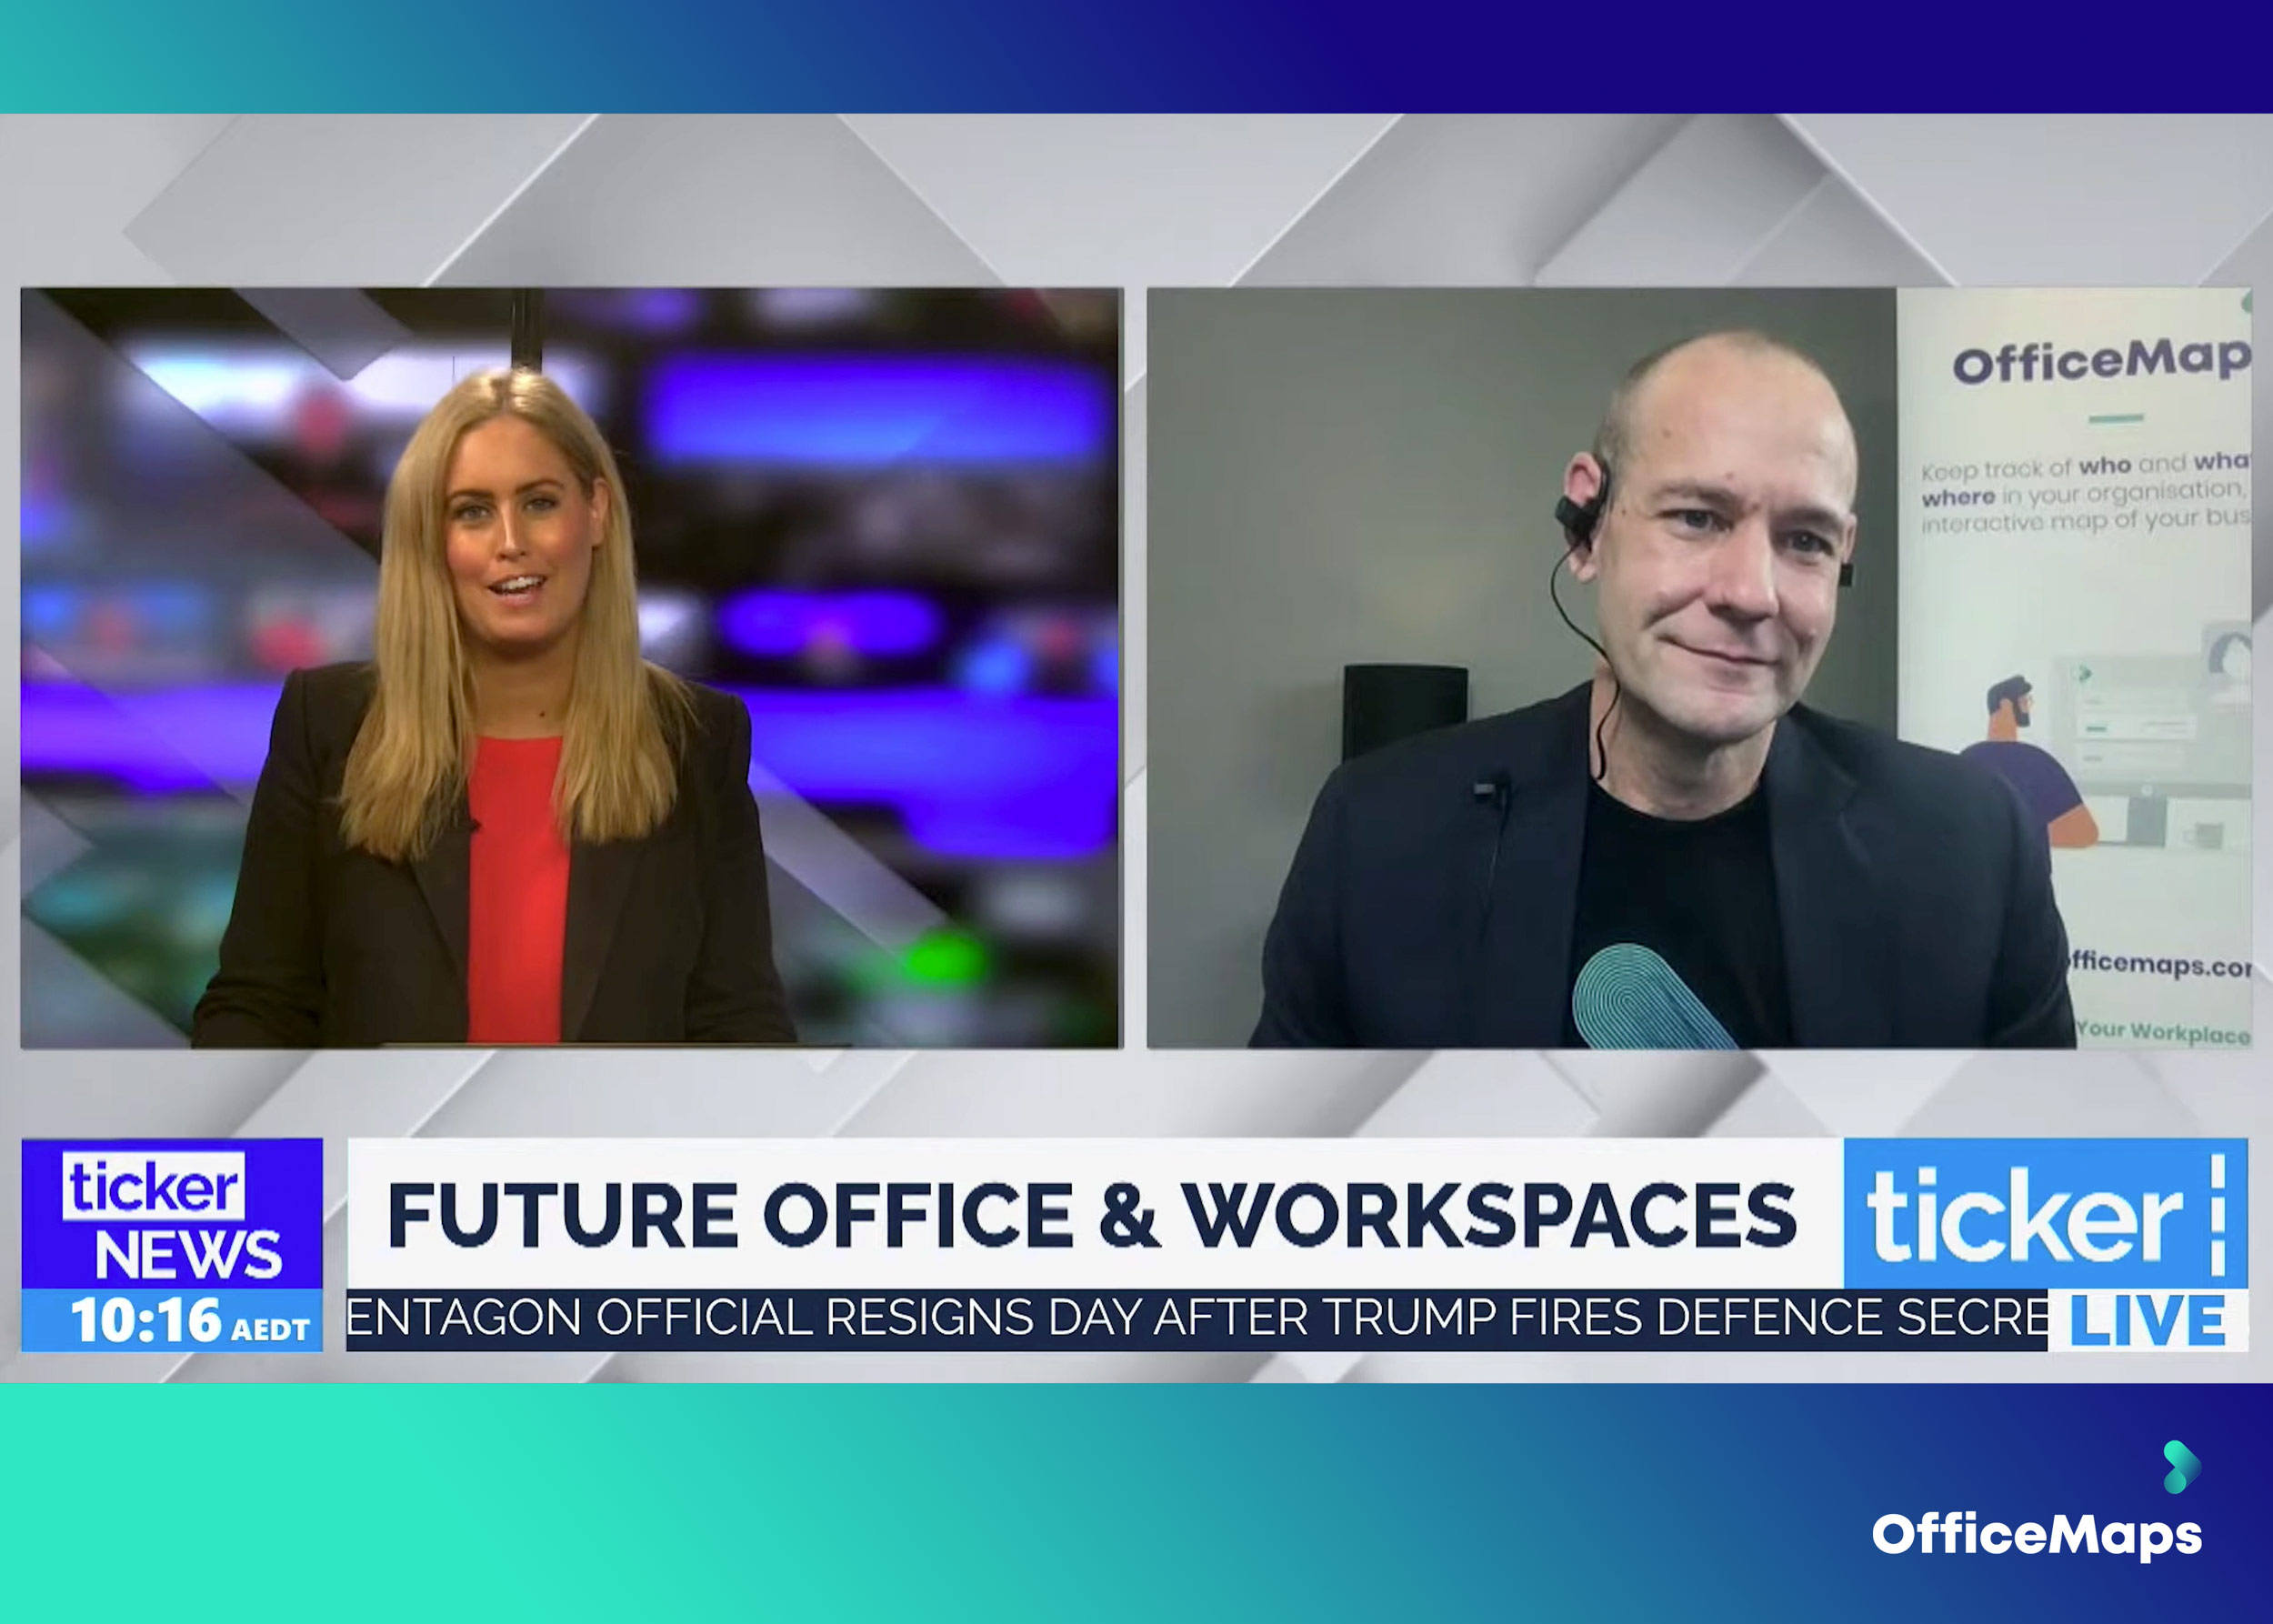 ticker tv and officemaps cxo discuss the future of work hotdesking the future office and safe space management